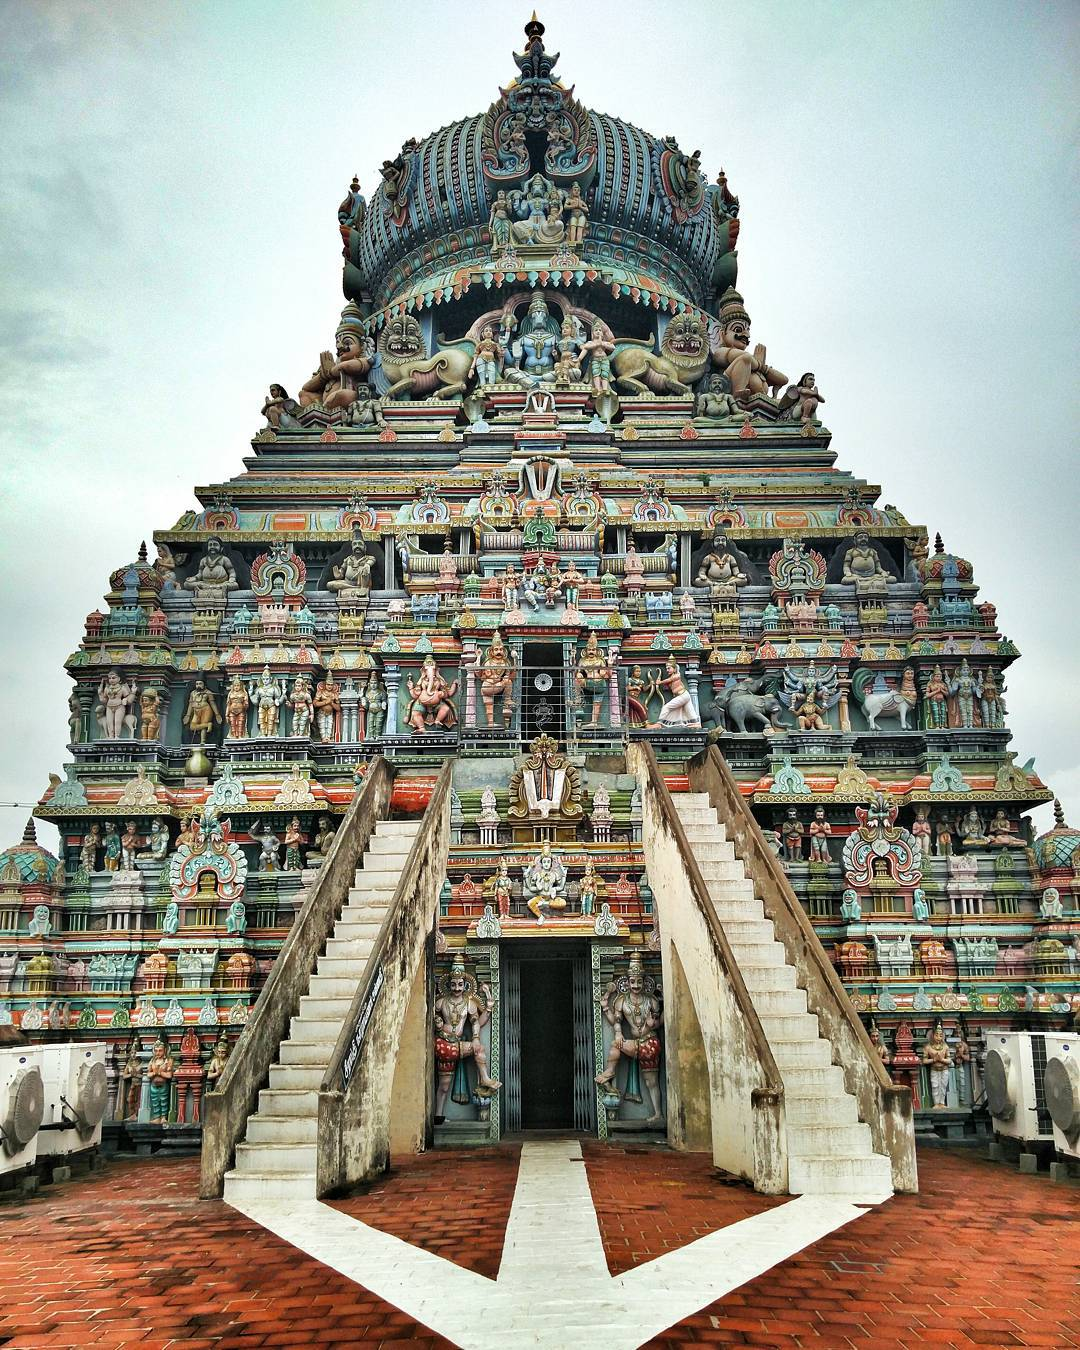 Sri Muneeswaran Hindu Temple Malaysia, Singapore & Brunei, Meenakshi Hindu temple in Tamil. 2500 years old | Incredible India ...